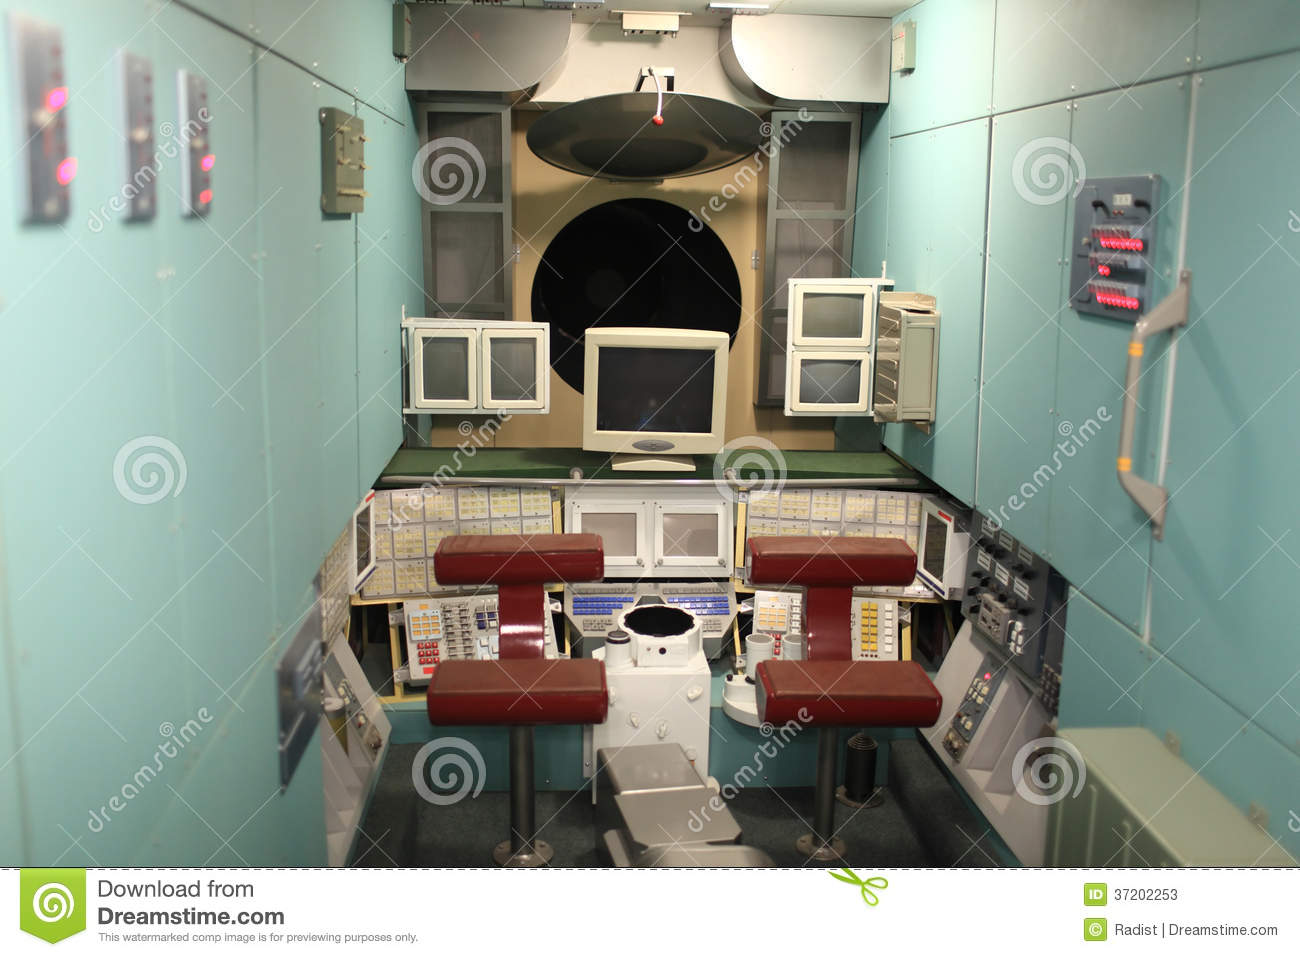 space station 5 2001 interior - photo #32